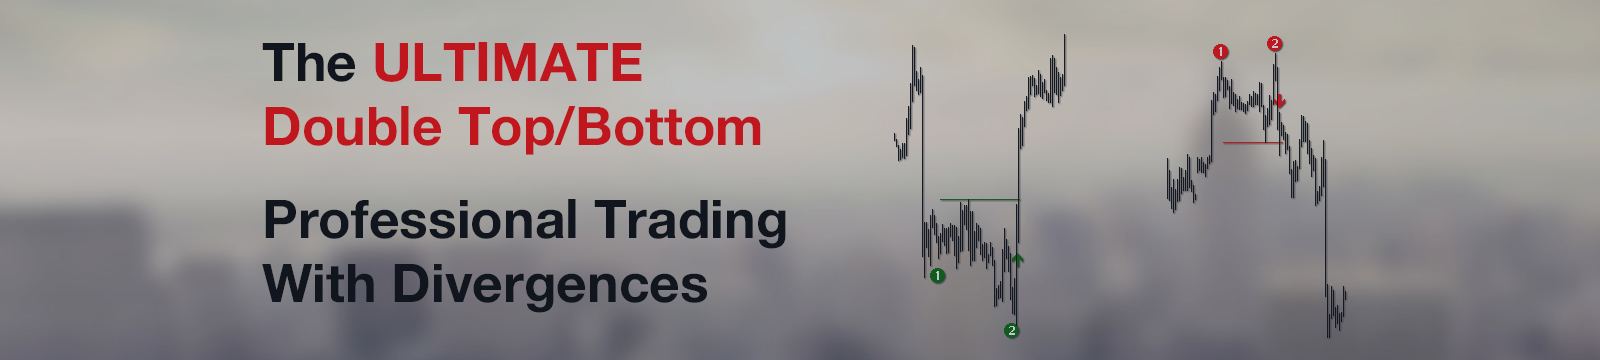 Professional Trading With Double Tops/Bottoms And Divergences!